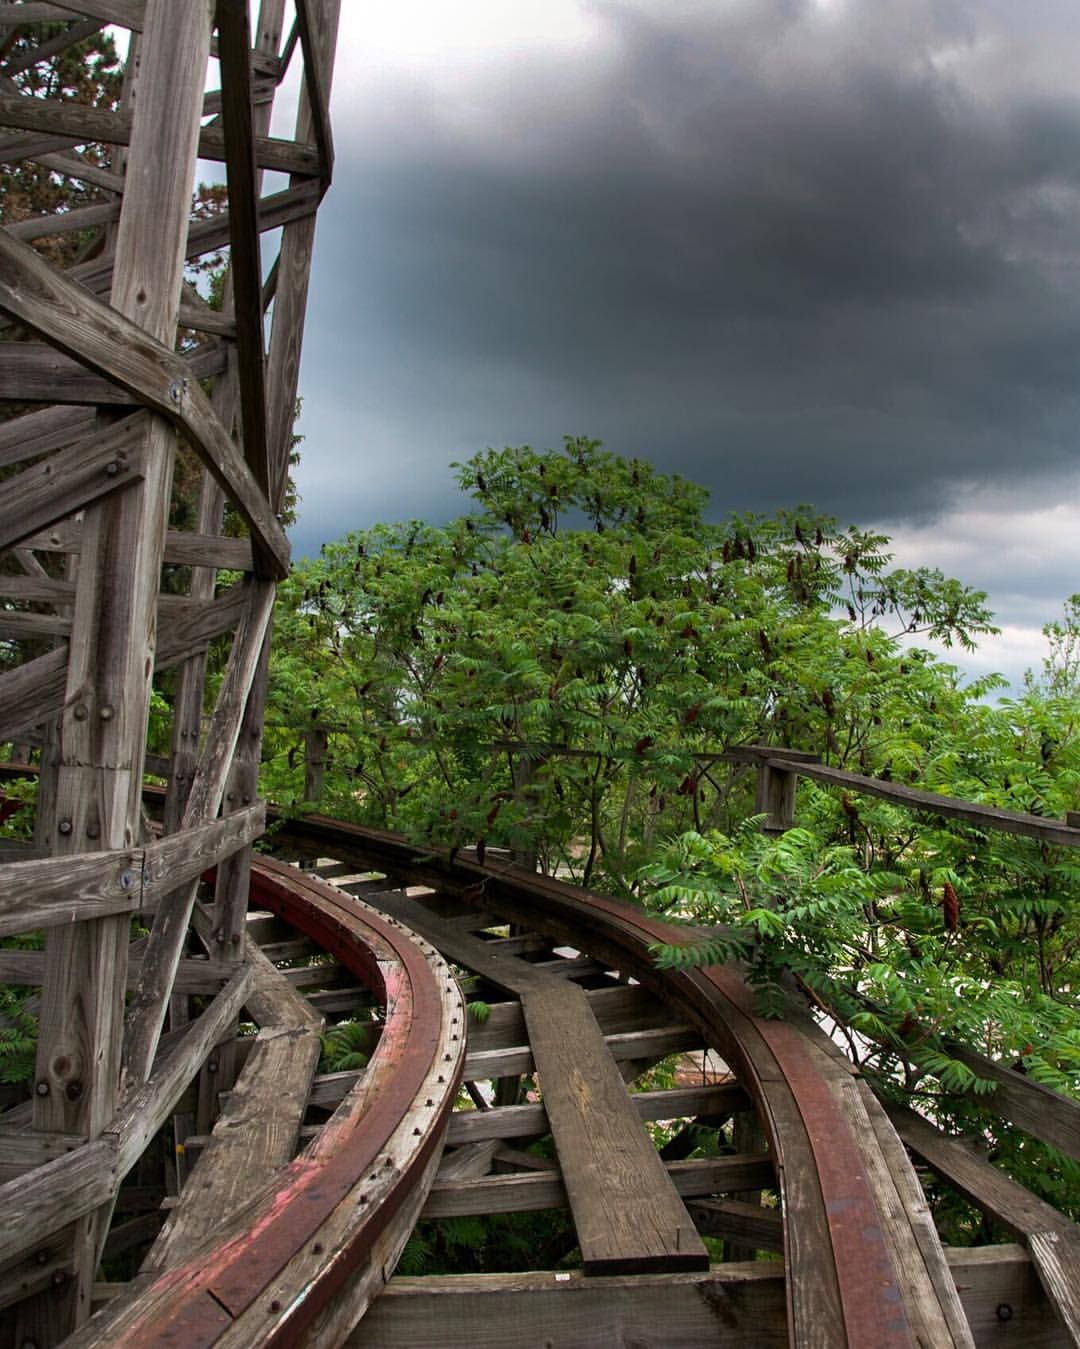 Stormy Skies Loom Over The Abandoned Geauga Lake Amusement